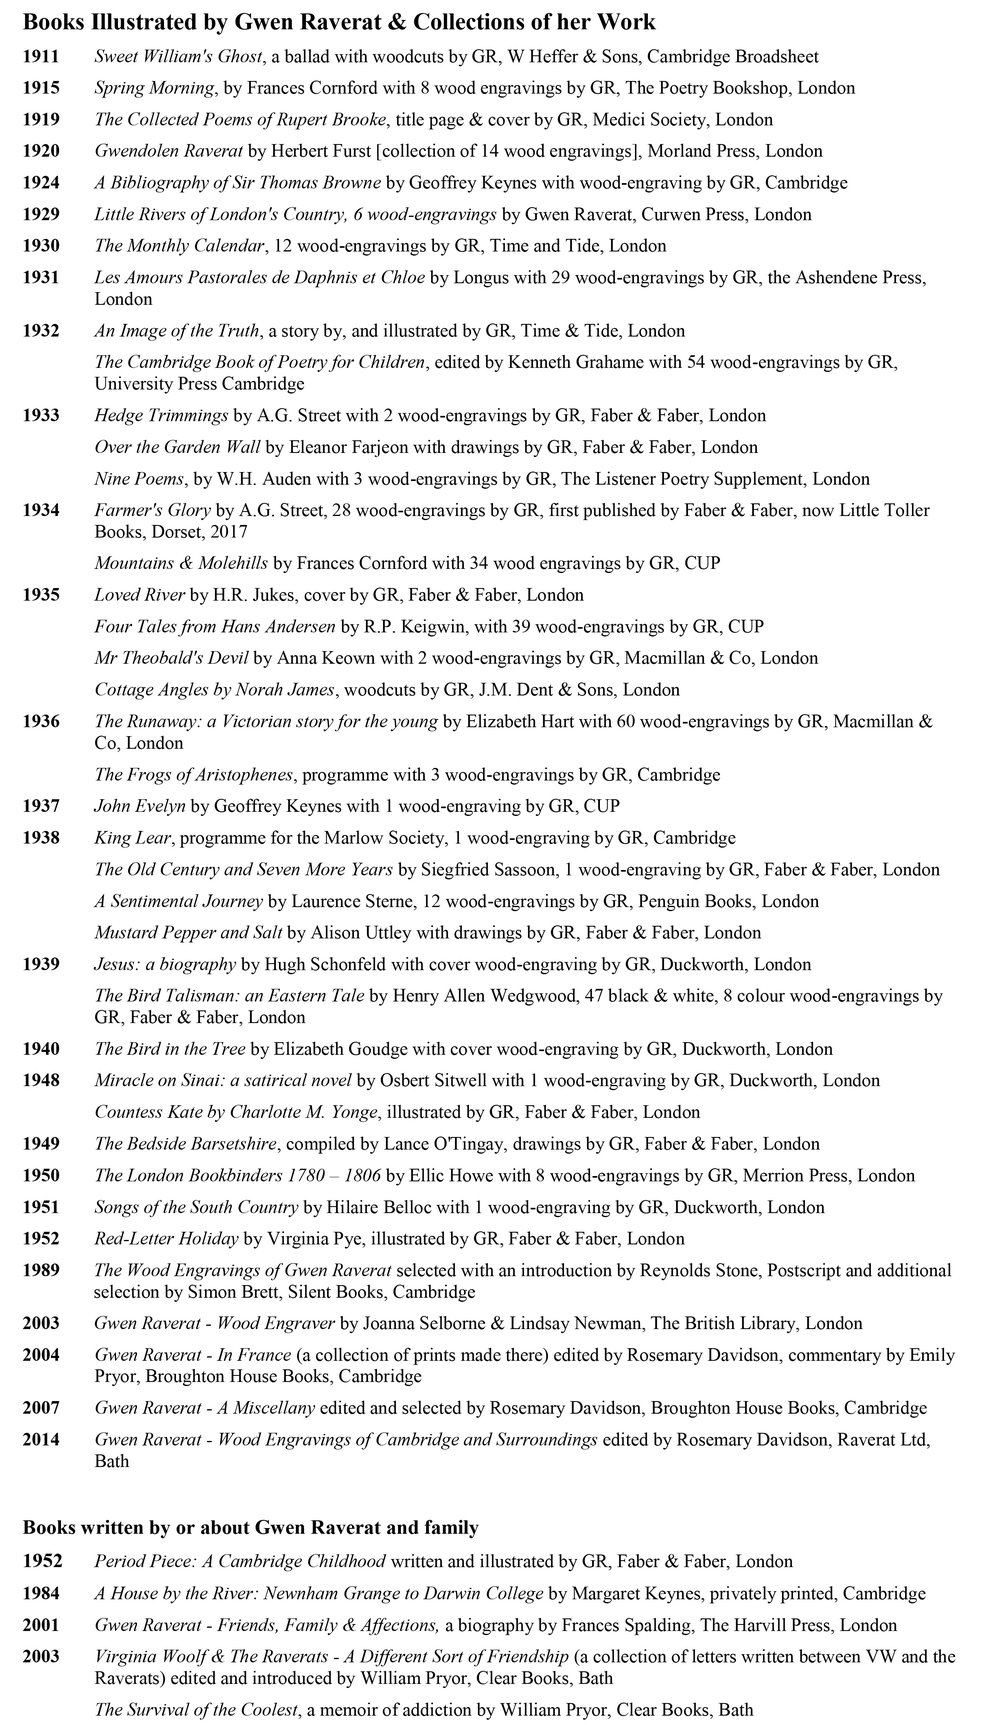 bibliography single sheet.jpg